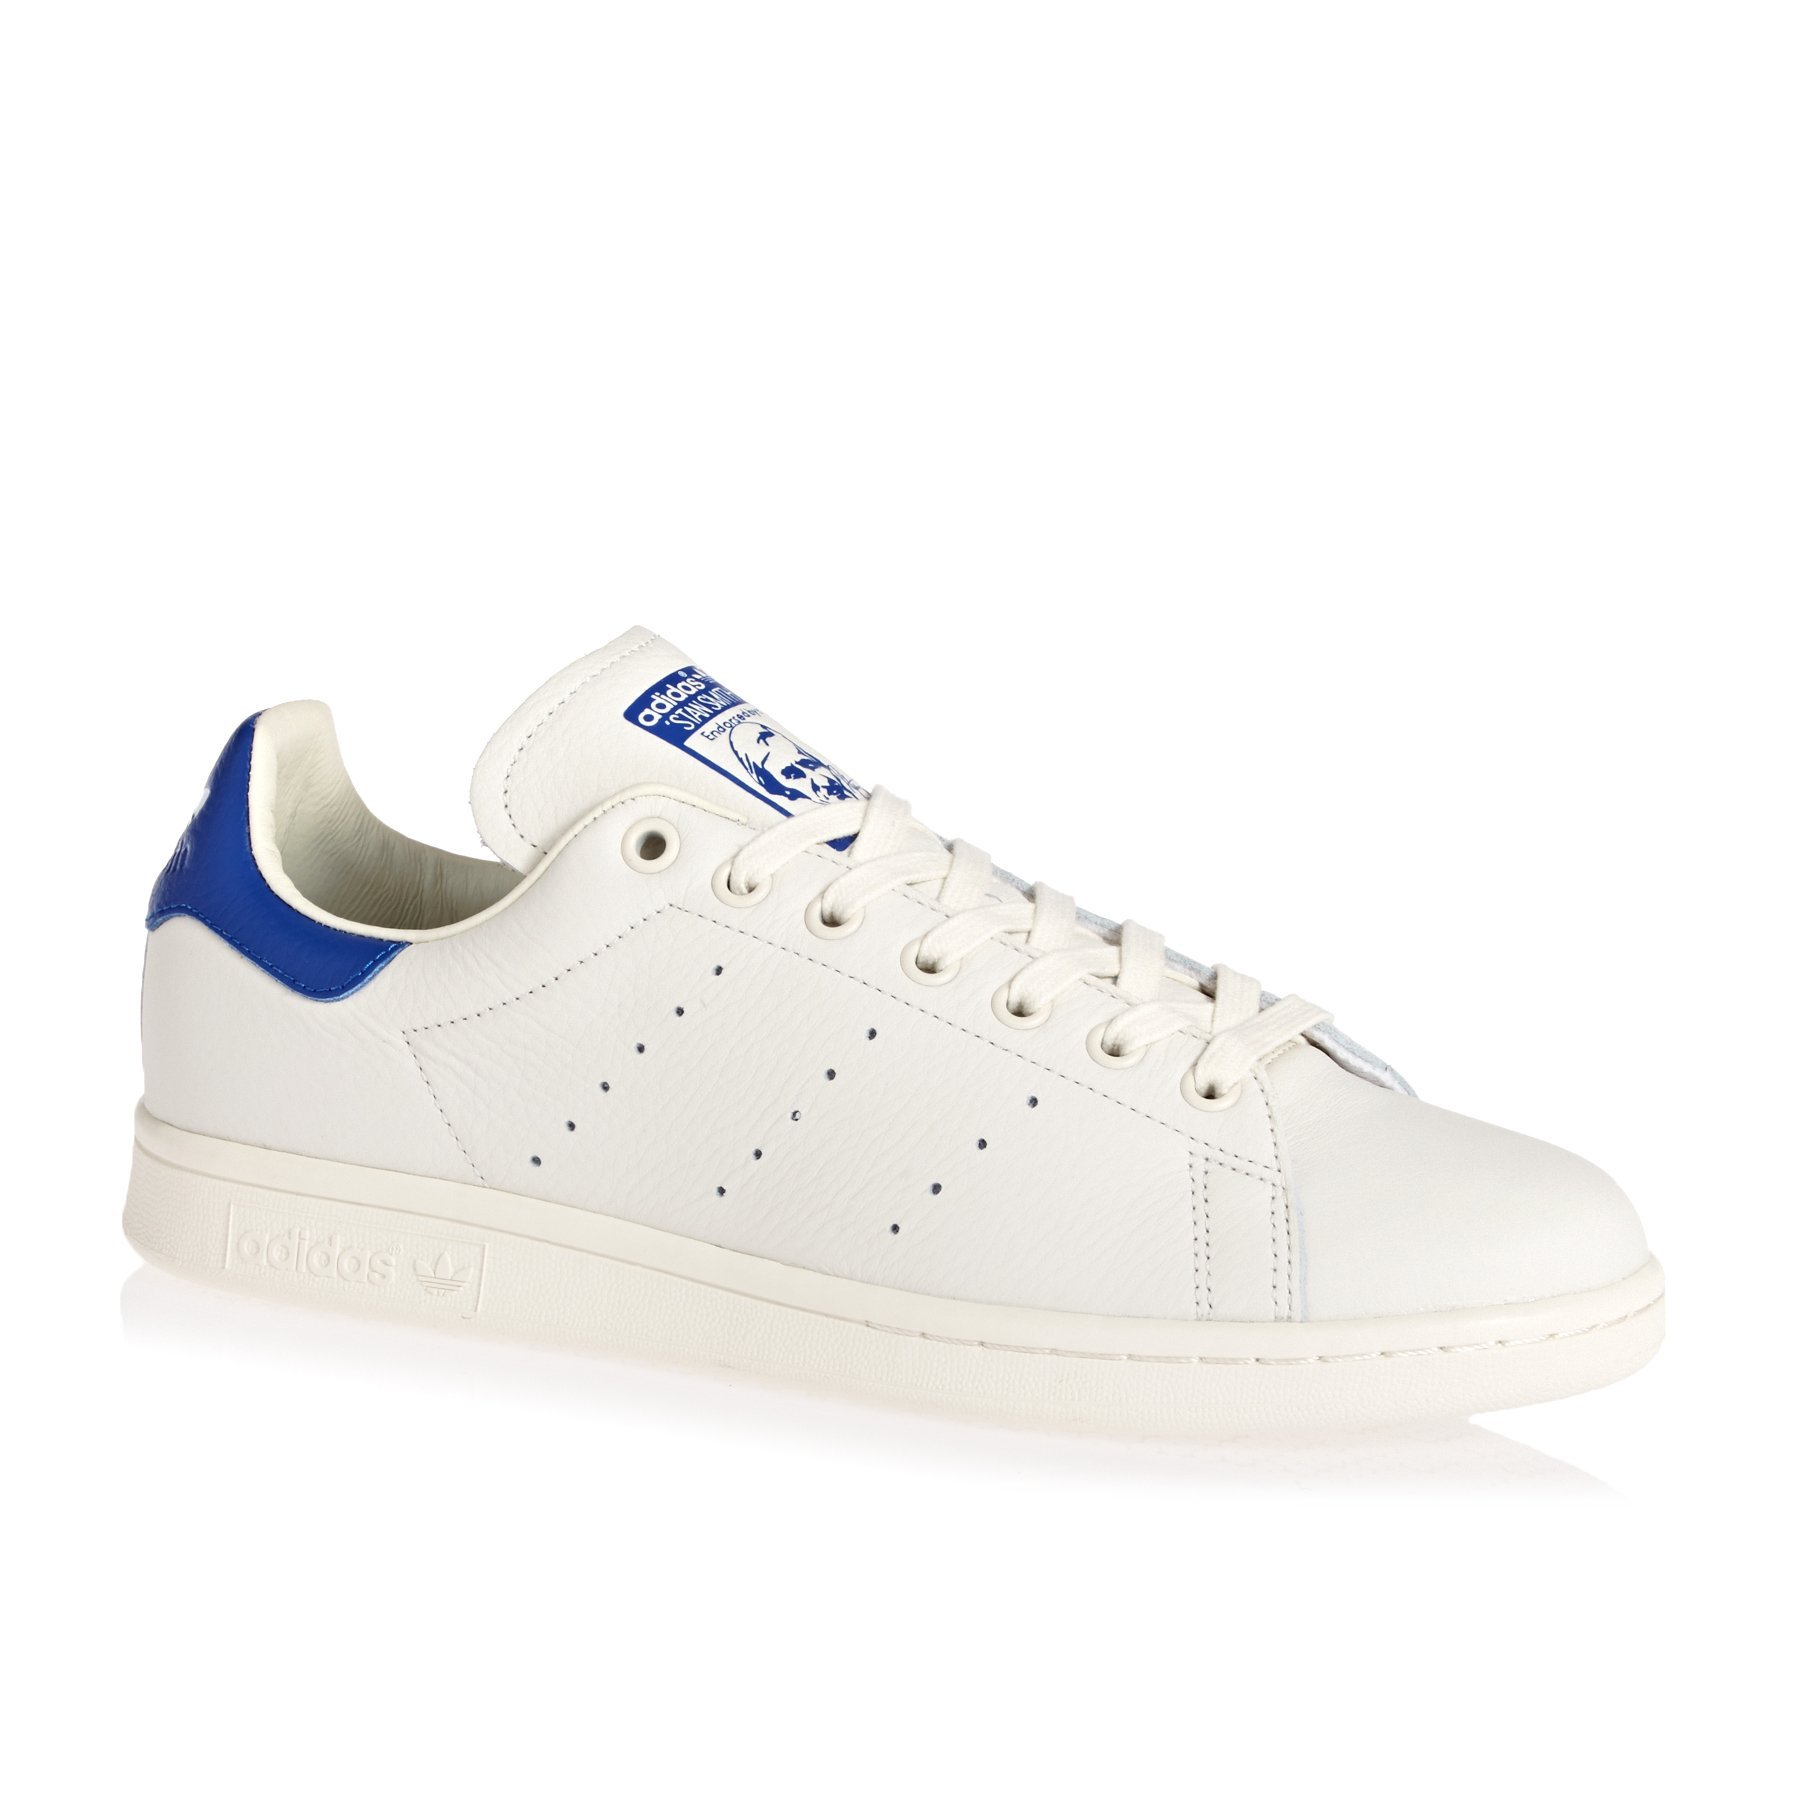 huge discount 73b78 ee8c9 adidas Originals Stan Smith Shoes 11.5 B(M) US Women / 10.5 D(M) US  Cwhite/cwhite/Croyal